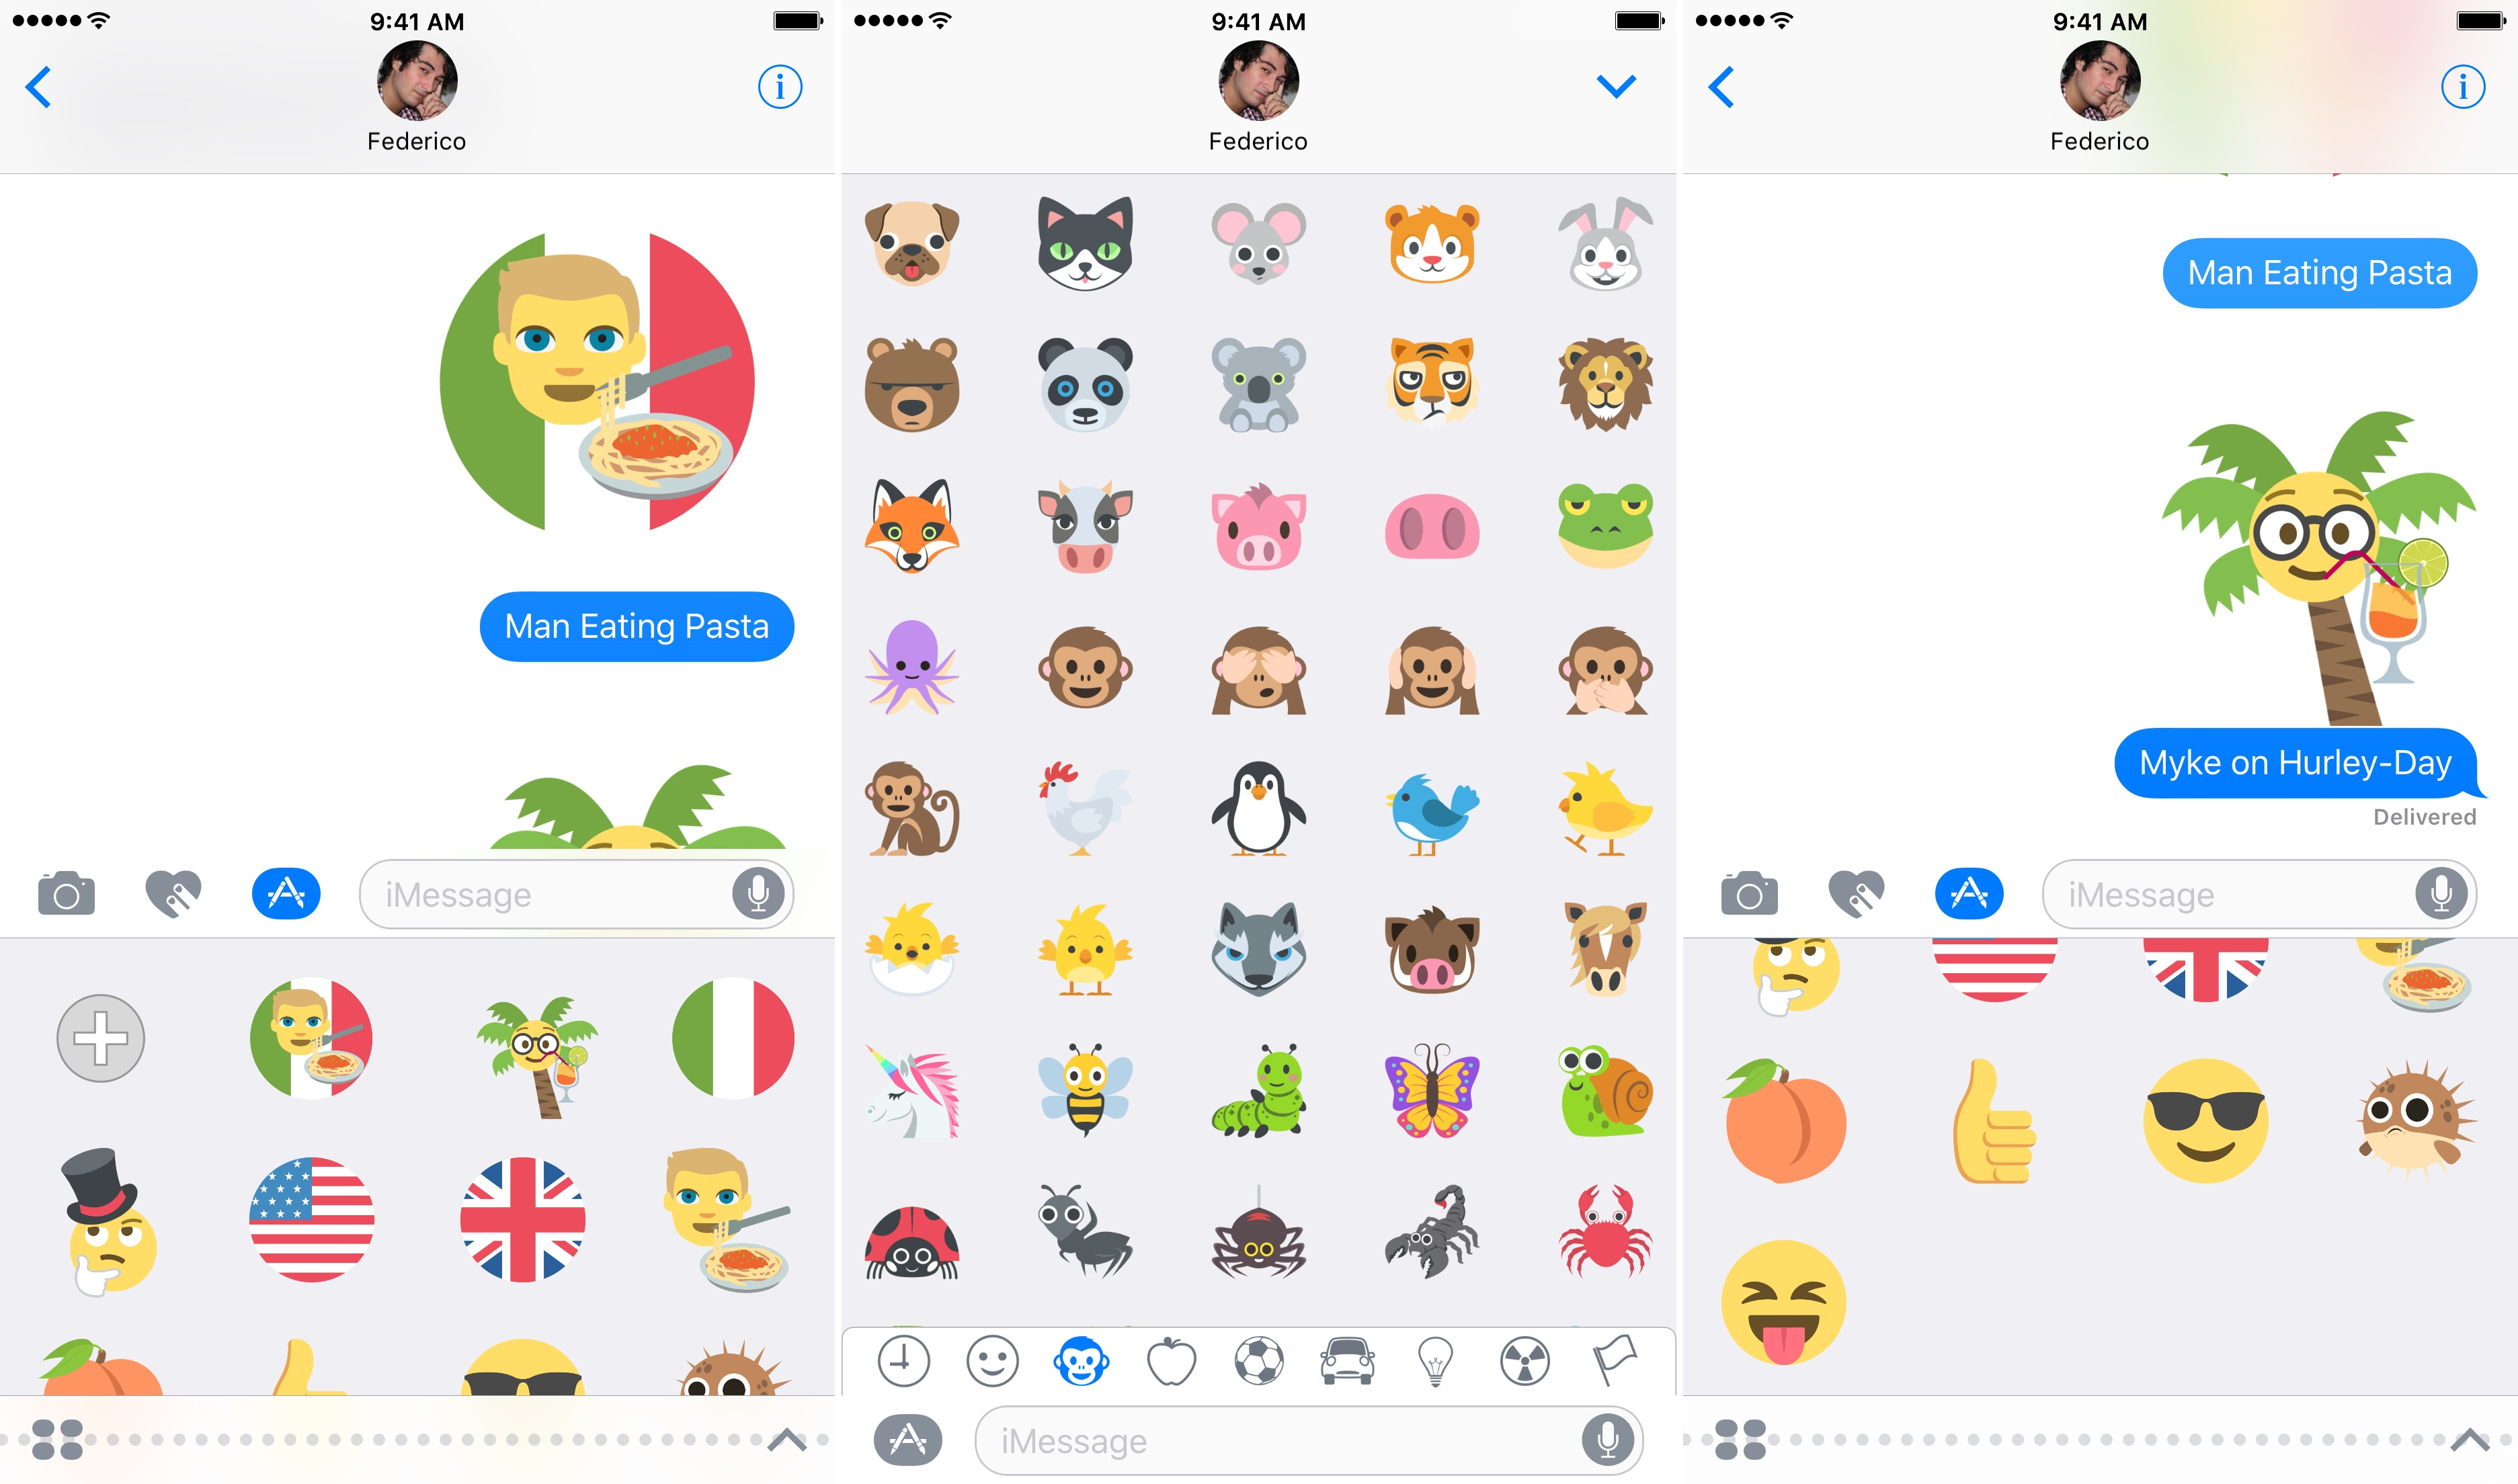 You can create your own emoji-style stickers with Emoji Stickers by combining multiple emoji.